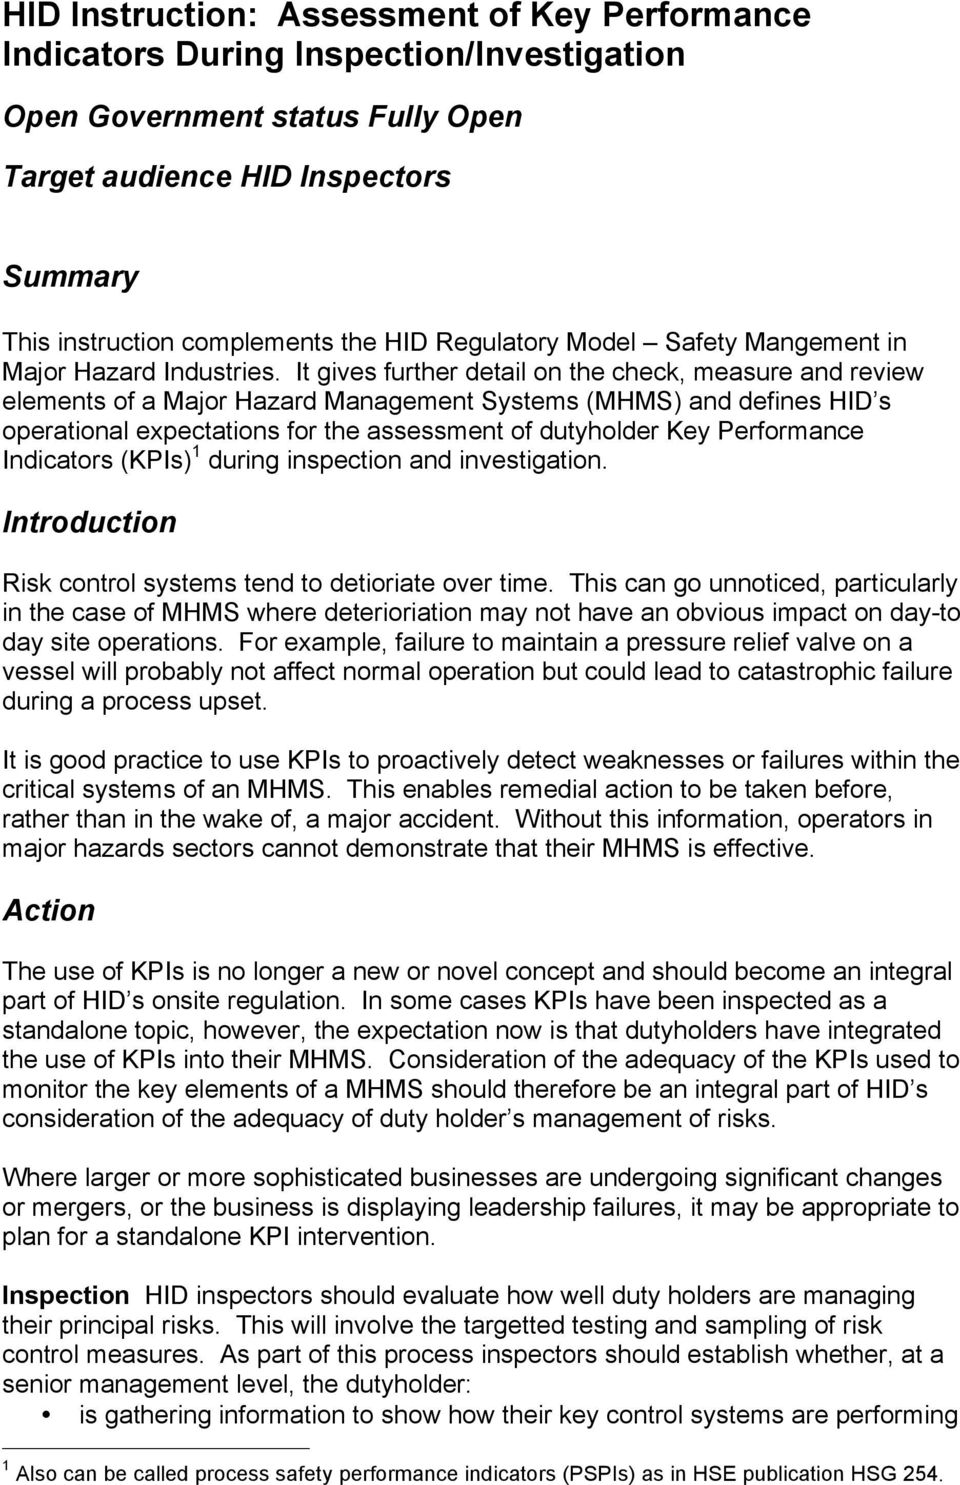 It gives further detail on the check, measure and review elements of a Major Hazard Management Systems (MHMS) and defines HID s operational expectations for the assessment of dutyholder Key